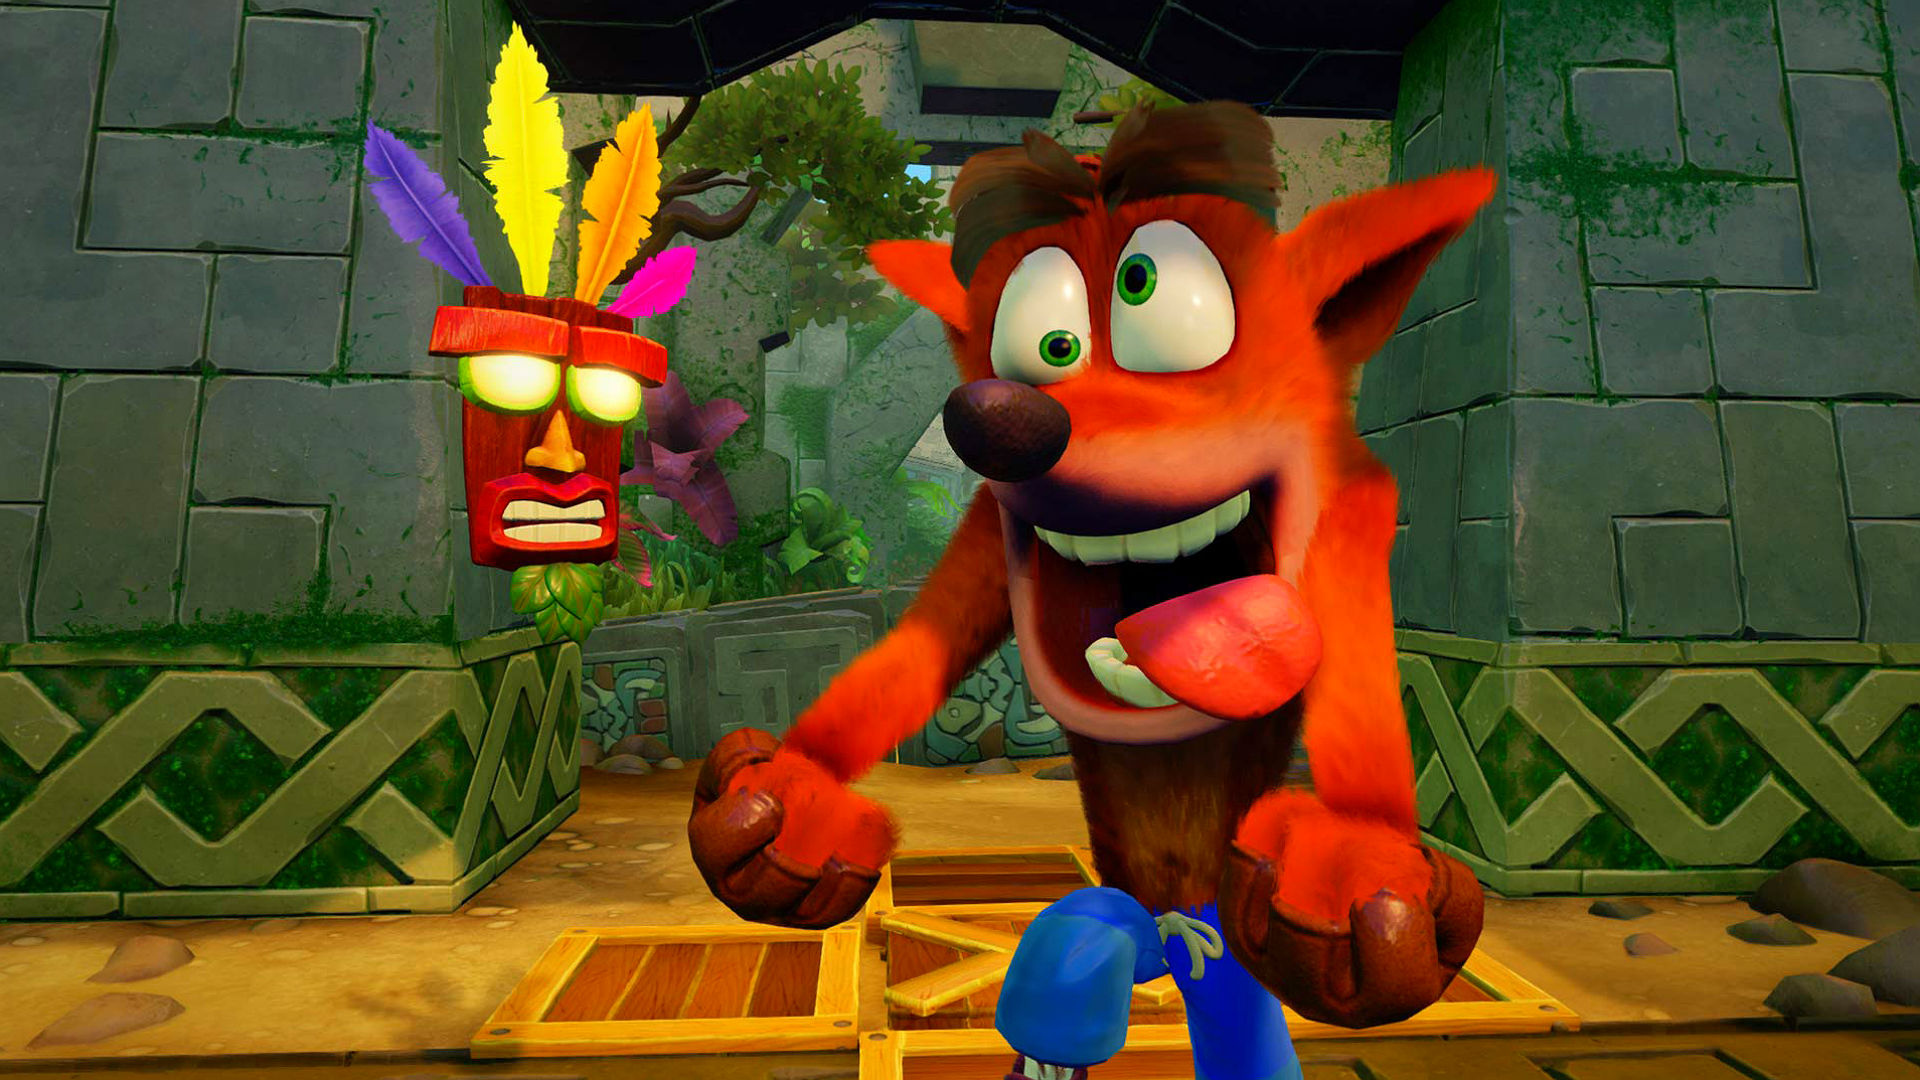 More hints suggest a new Crash Bandicoot game is nigh